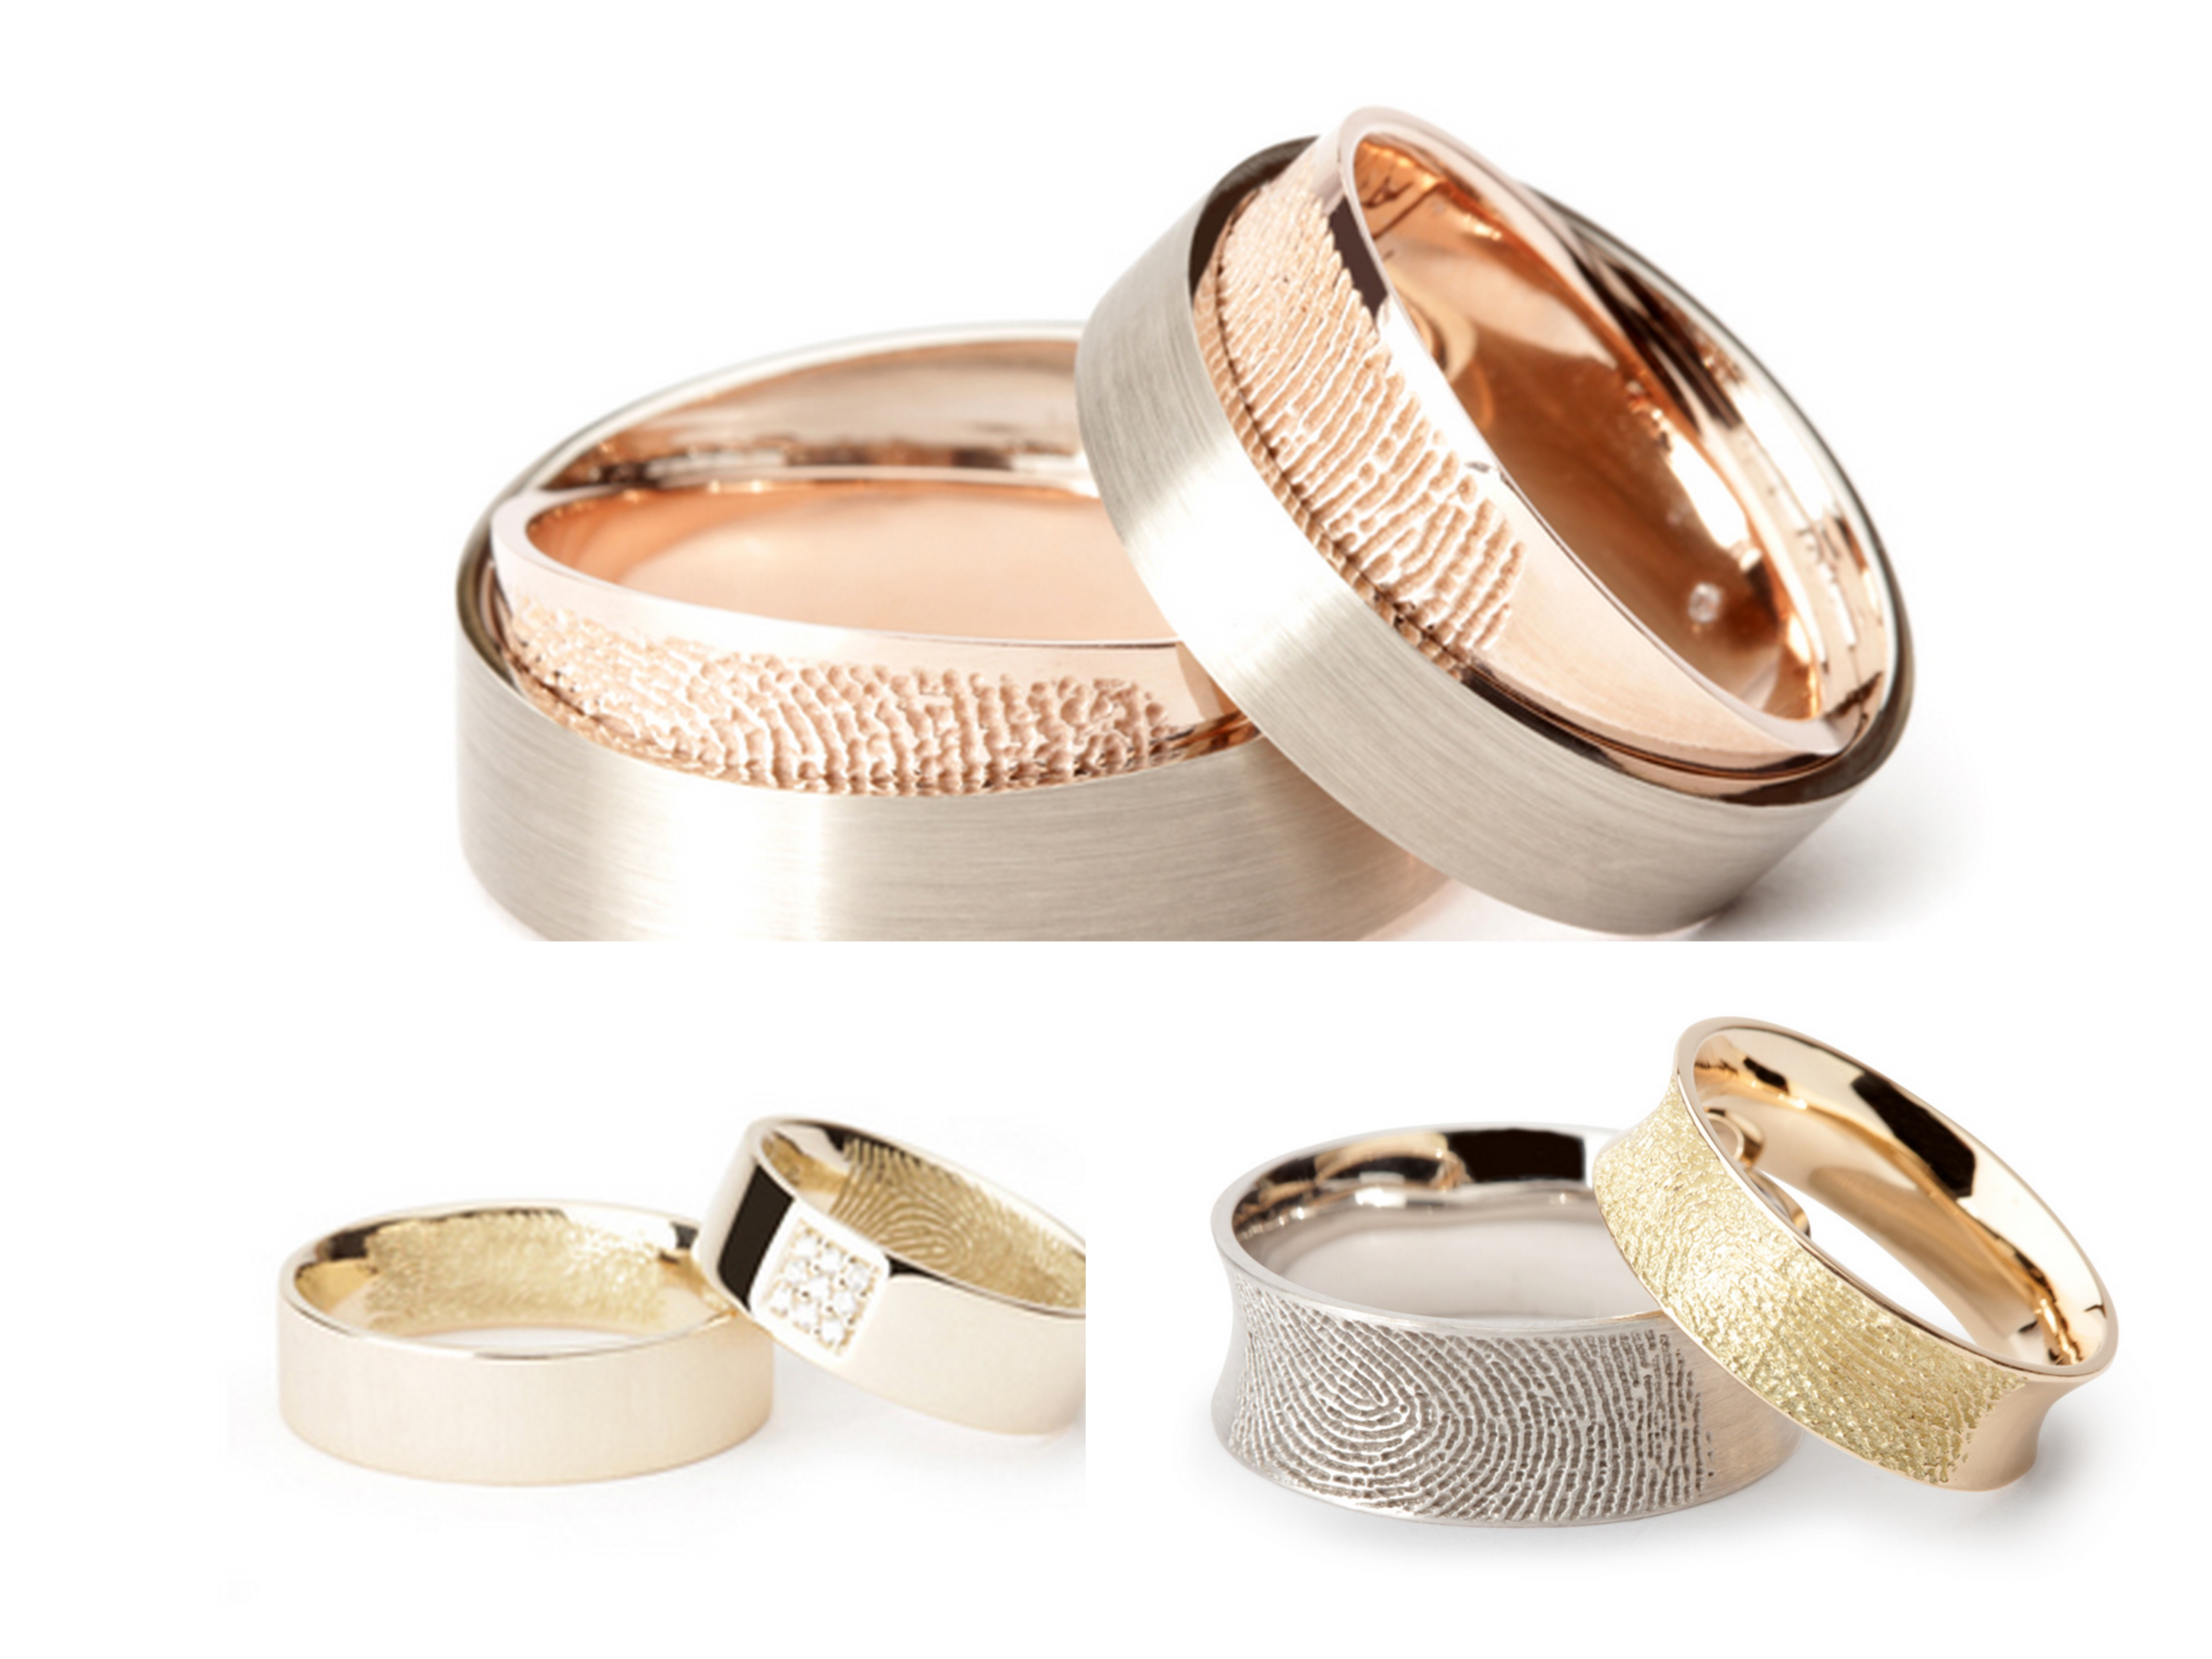 the rings please fingerprint wedding band The ring at the top the rose gold section slides out so the fingerprint is like a secret